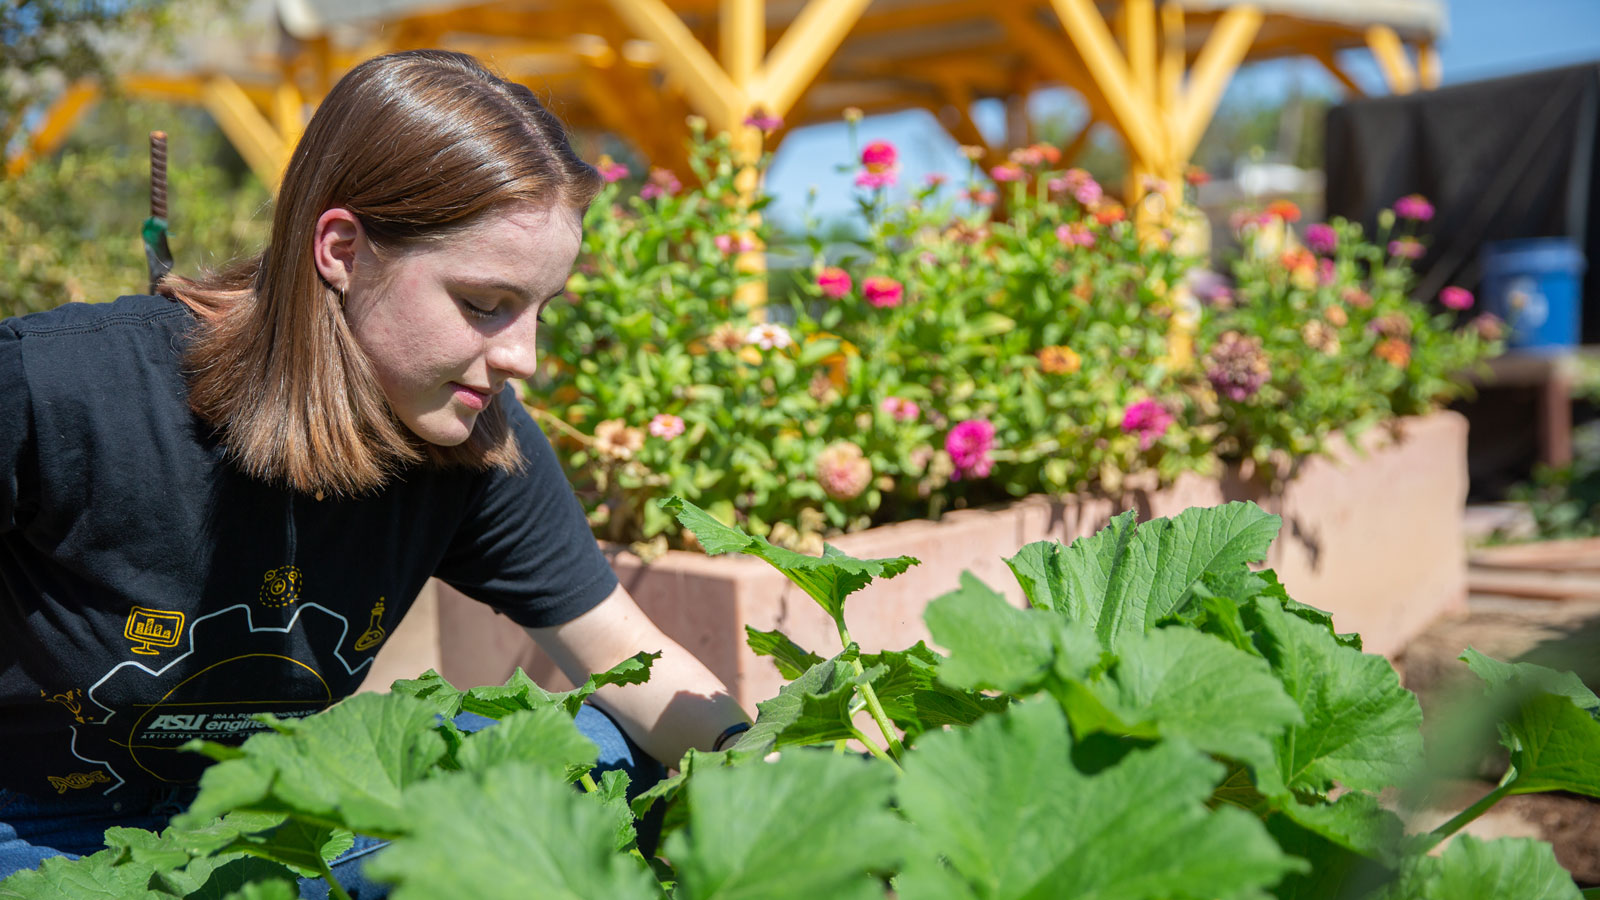 Emma Bonham works in the Keep Phoenix Beautiful Community Garden